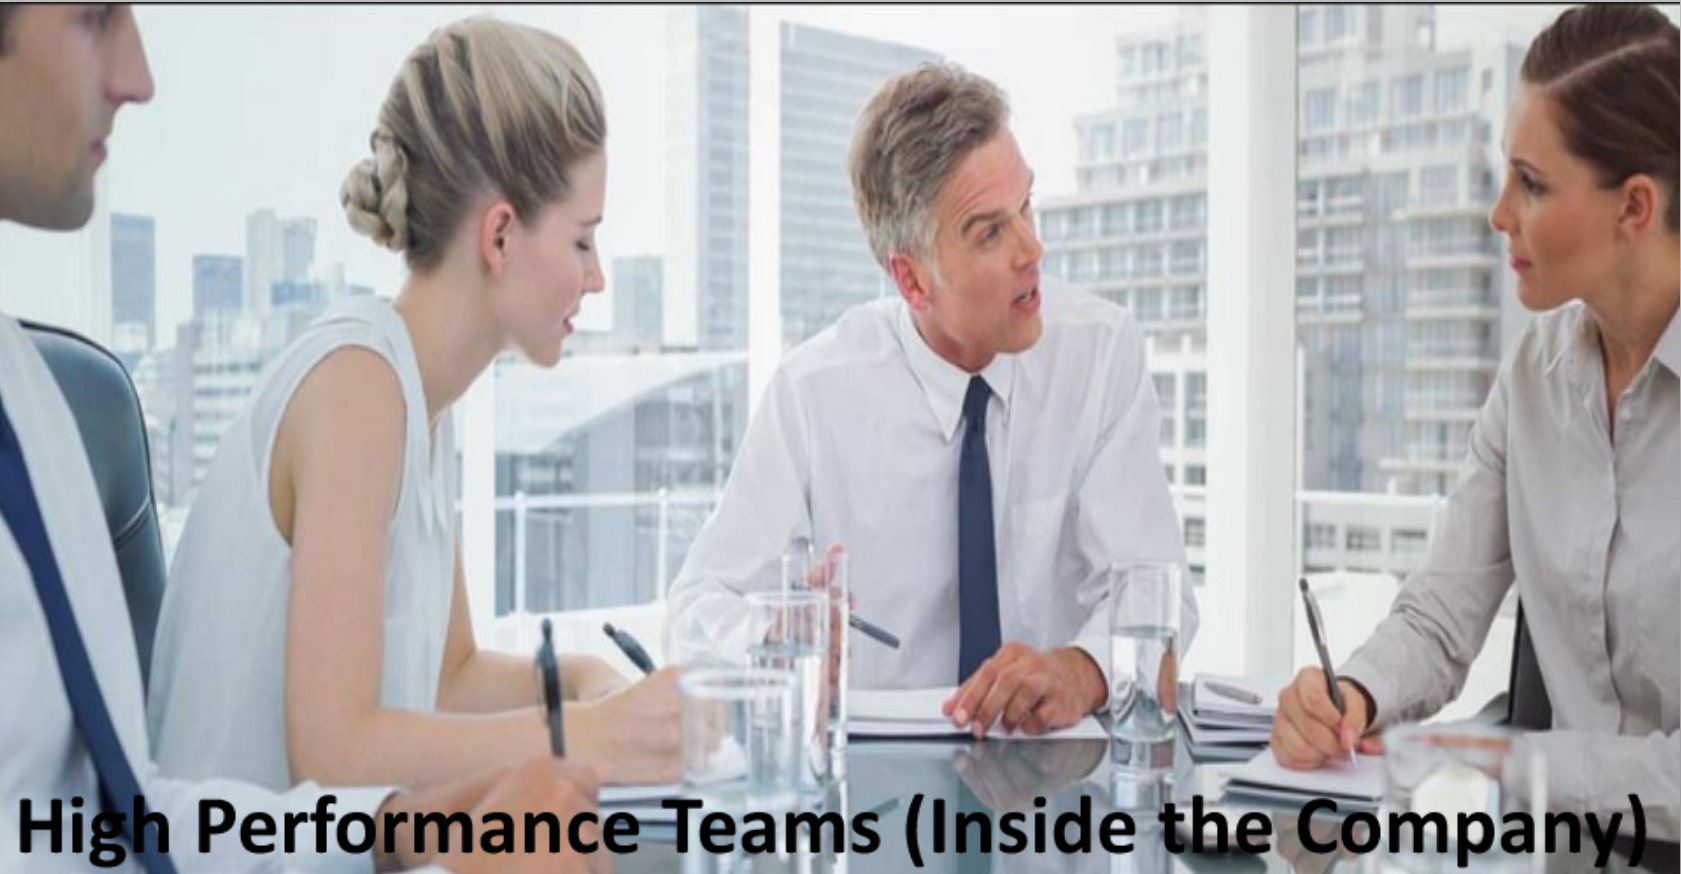 Building High Performance Teams (Internally)